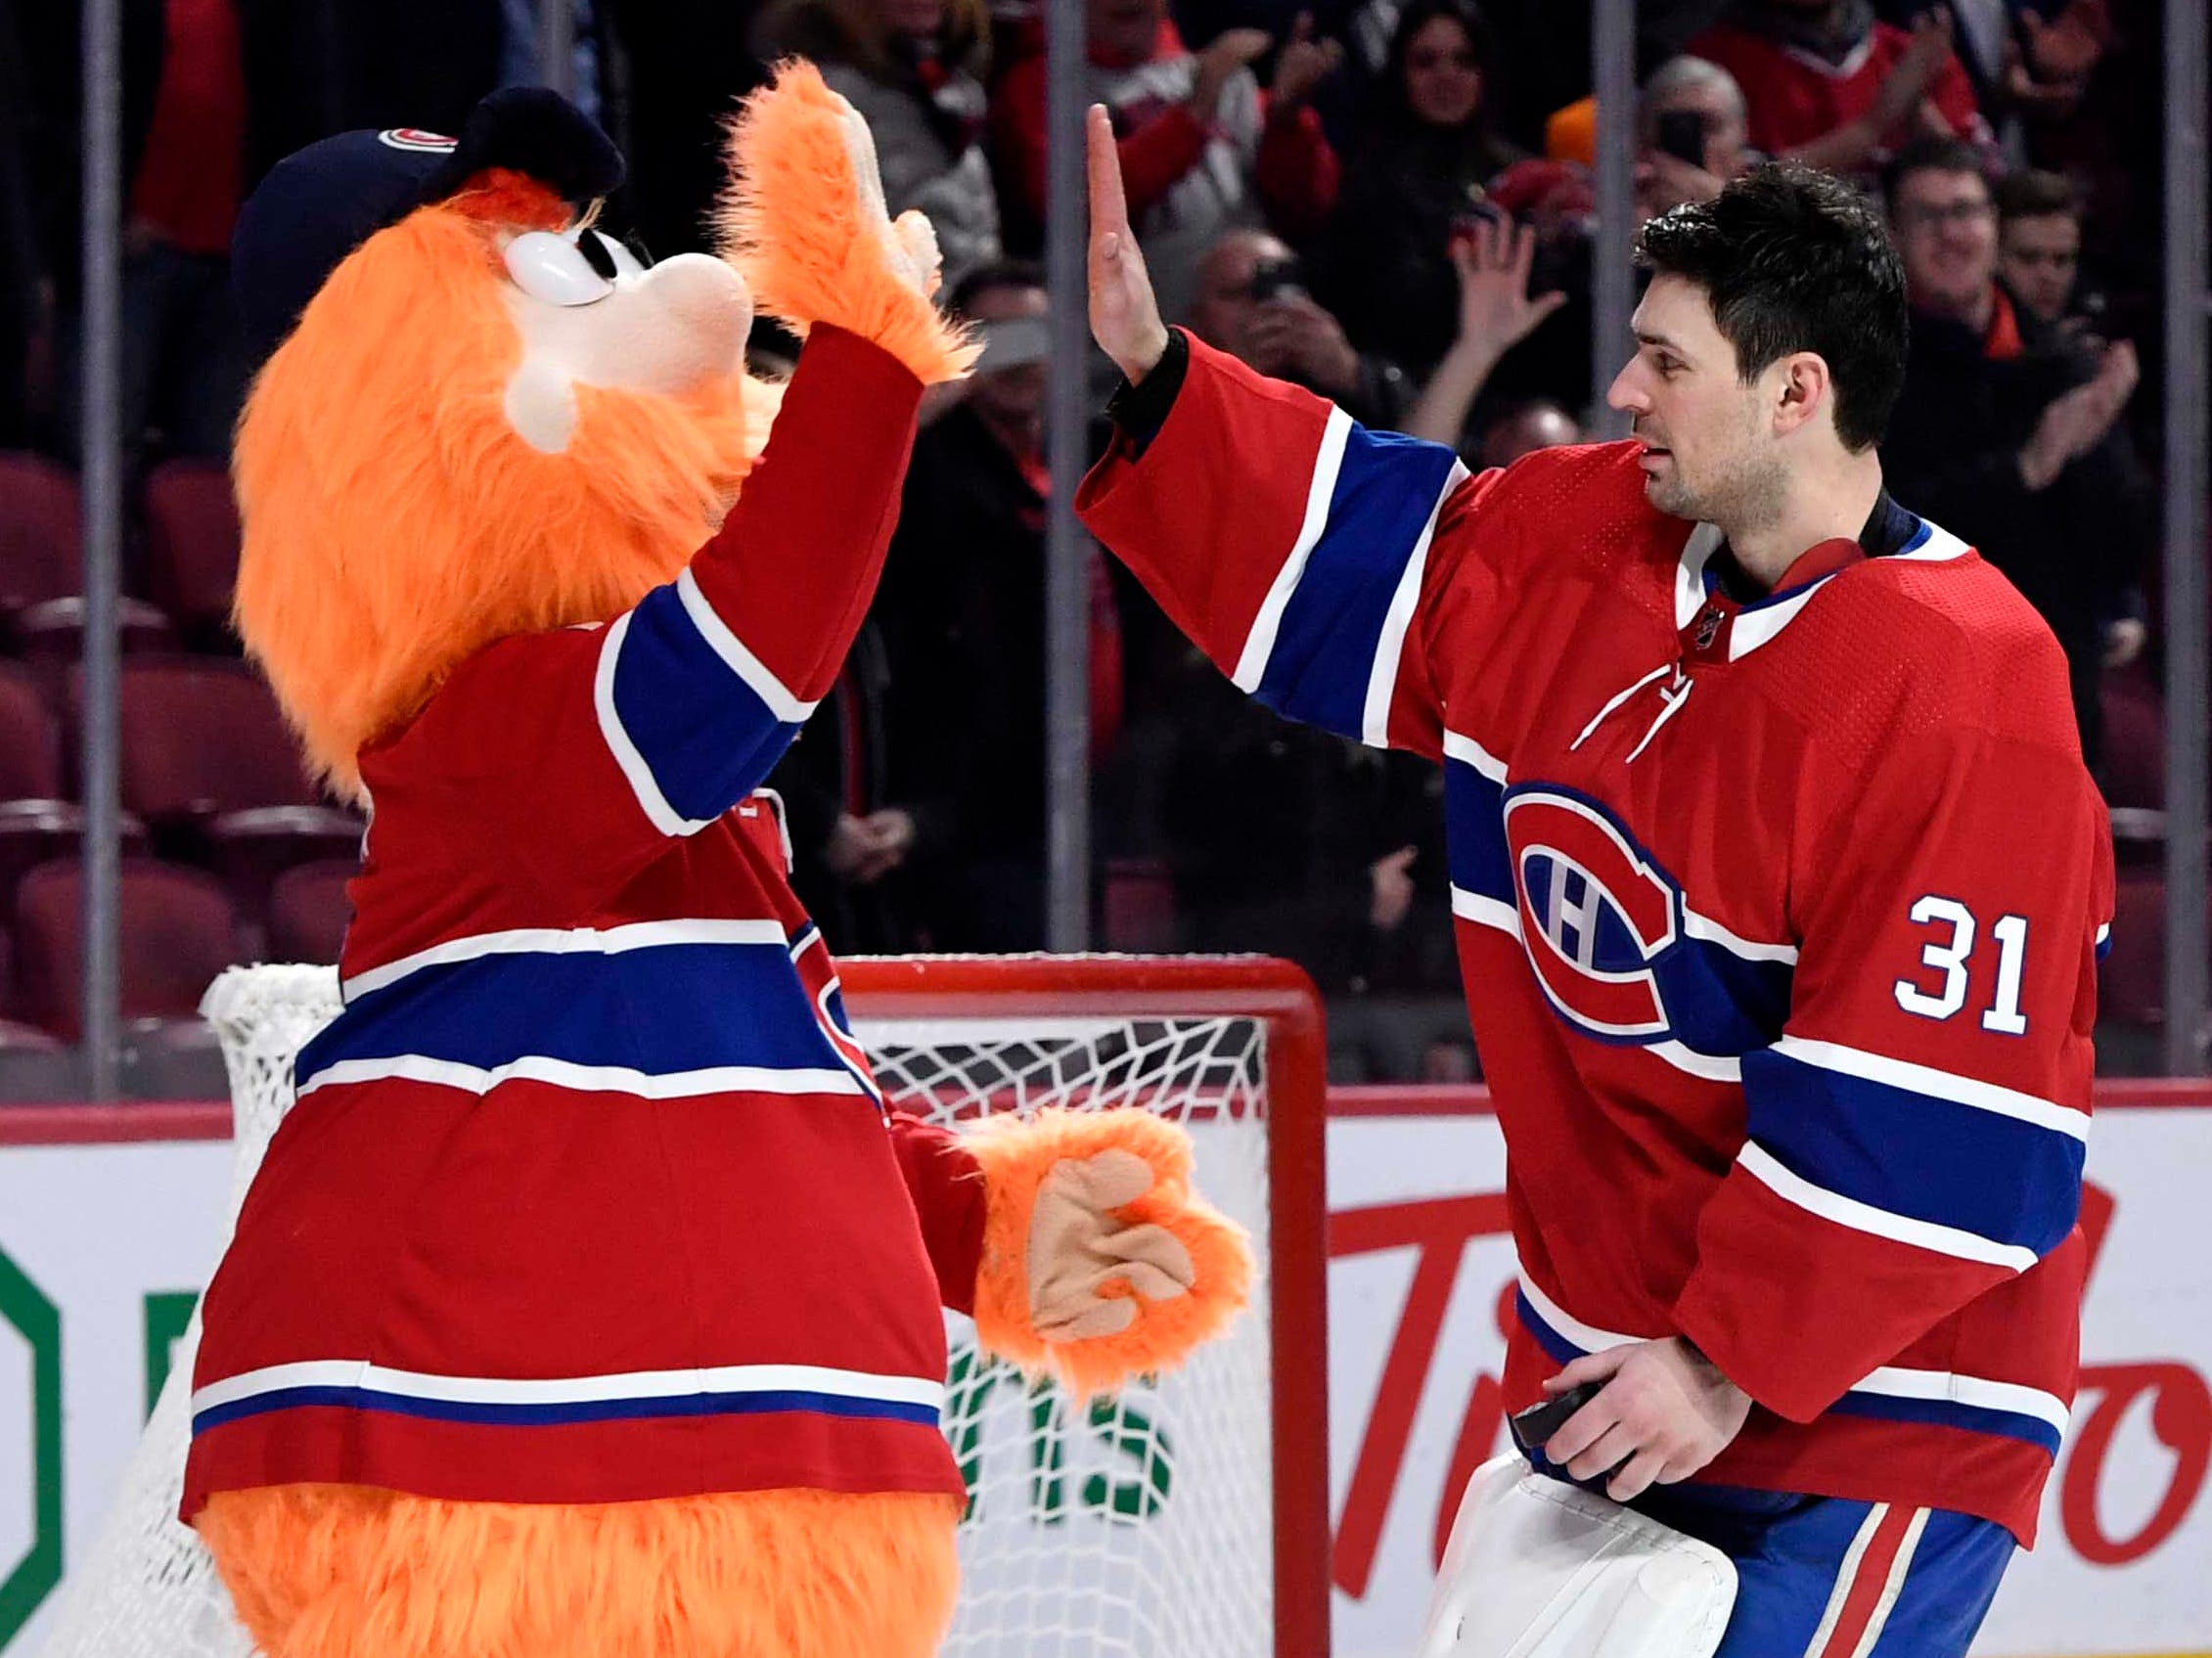 March 12: Montreal Canadiens goalie Carey Price high-fives team mascot Youppi! after becoming the team's winningest goalie with his 315th career victory.